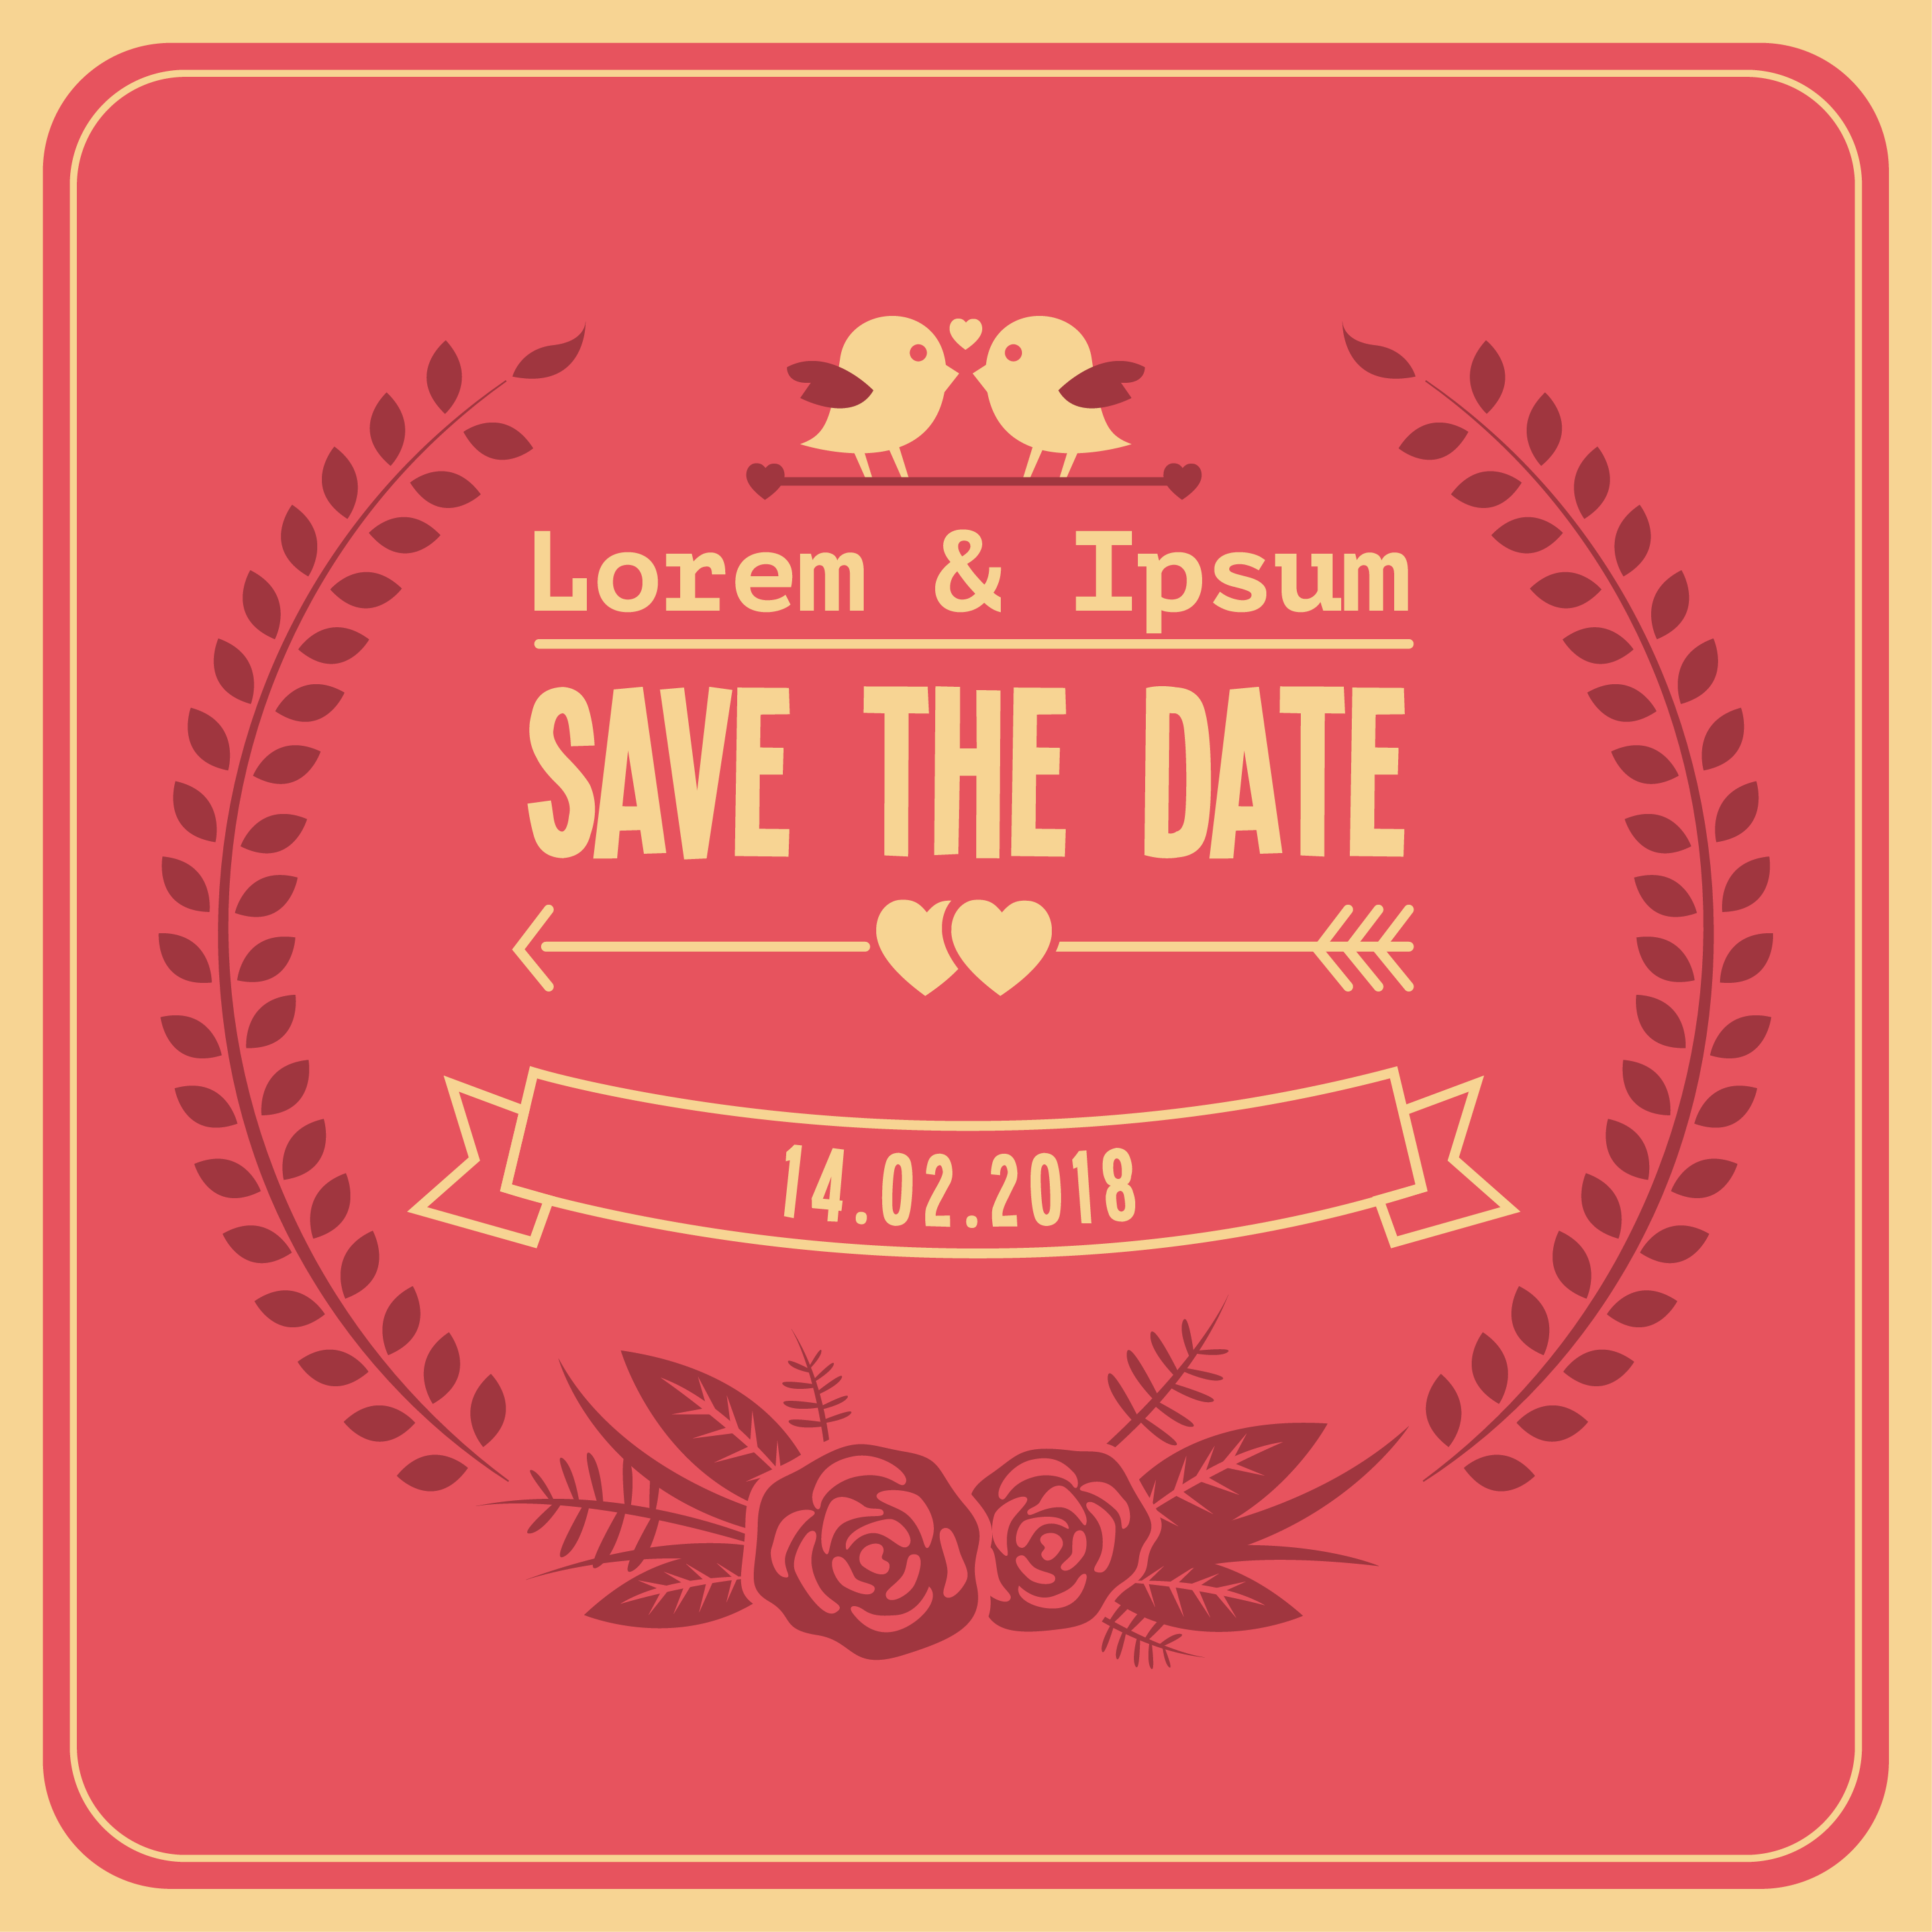 Free wedding save the date vector download free vector art stock graphics images for Save the date vector